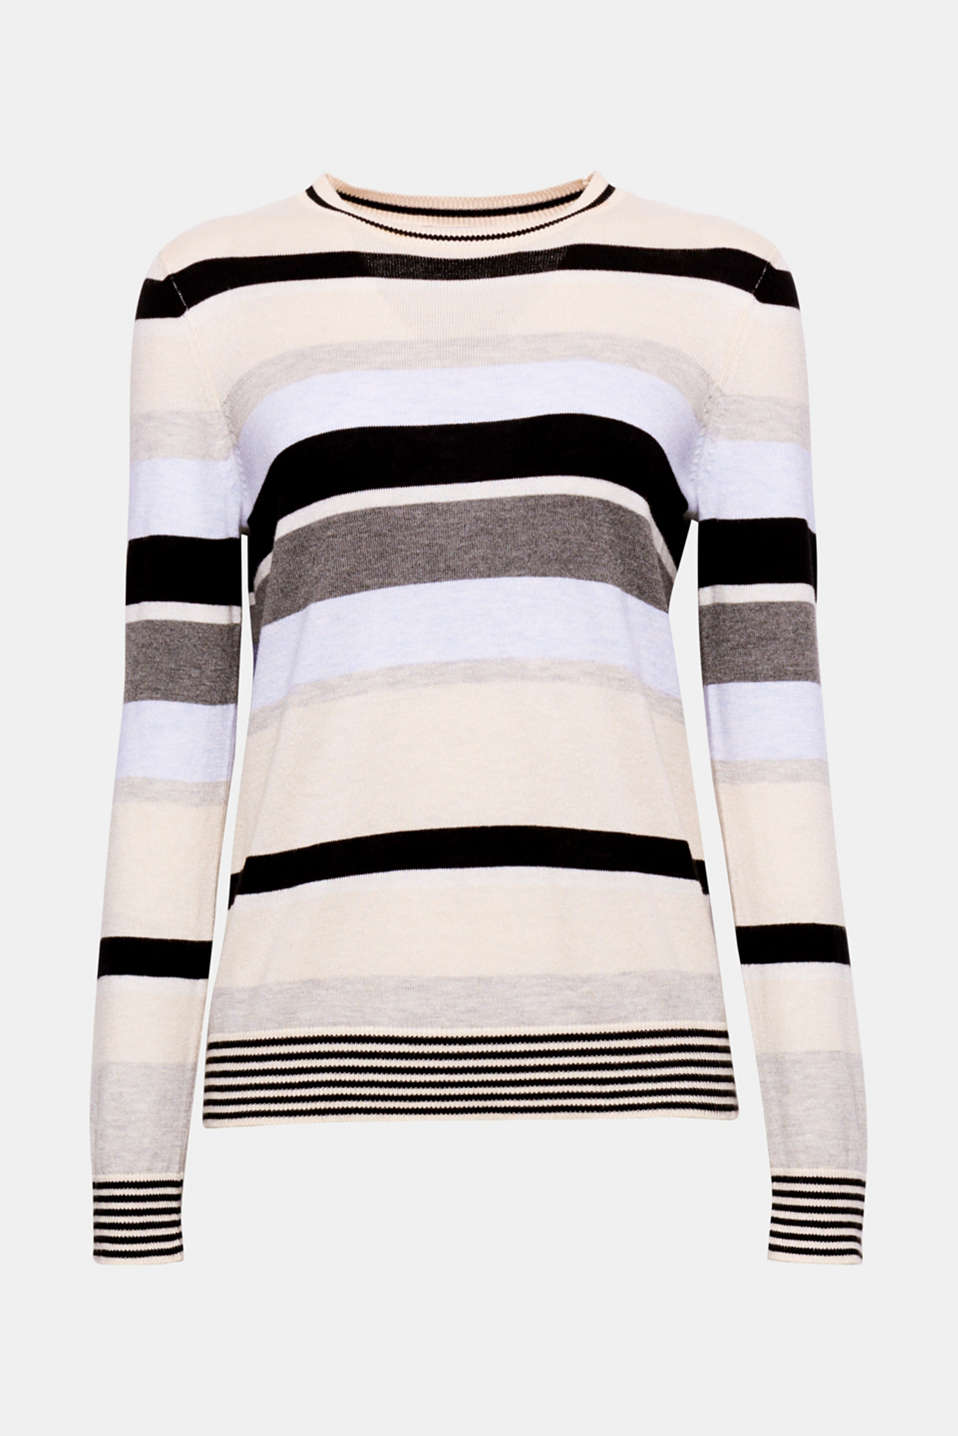 The new stripes are oh-so-stylish: plated and with cool colour blocking to create a new look!